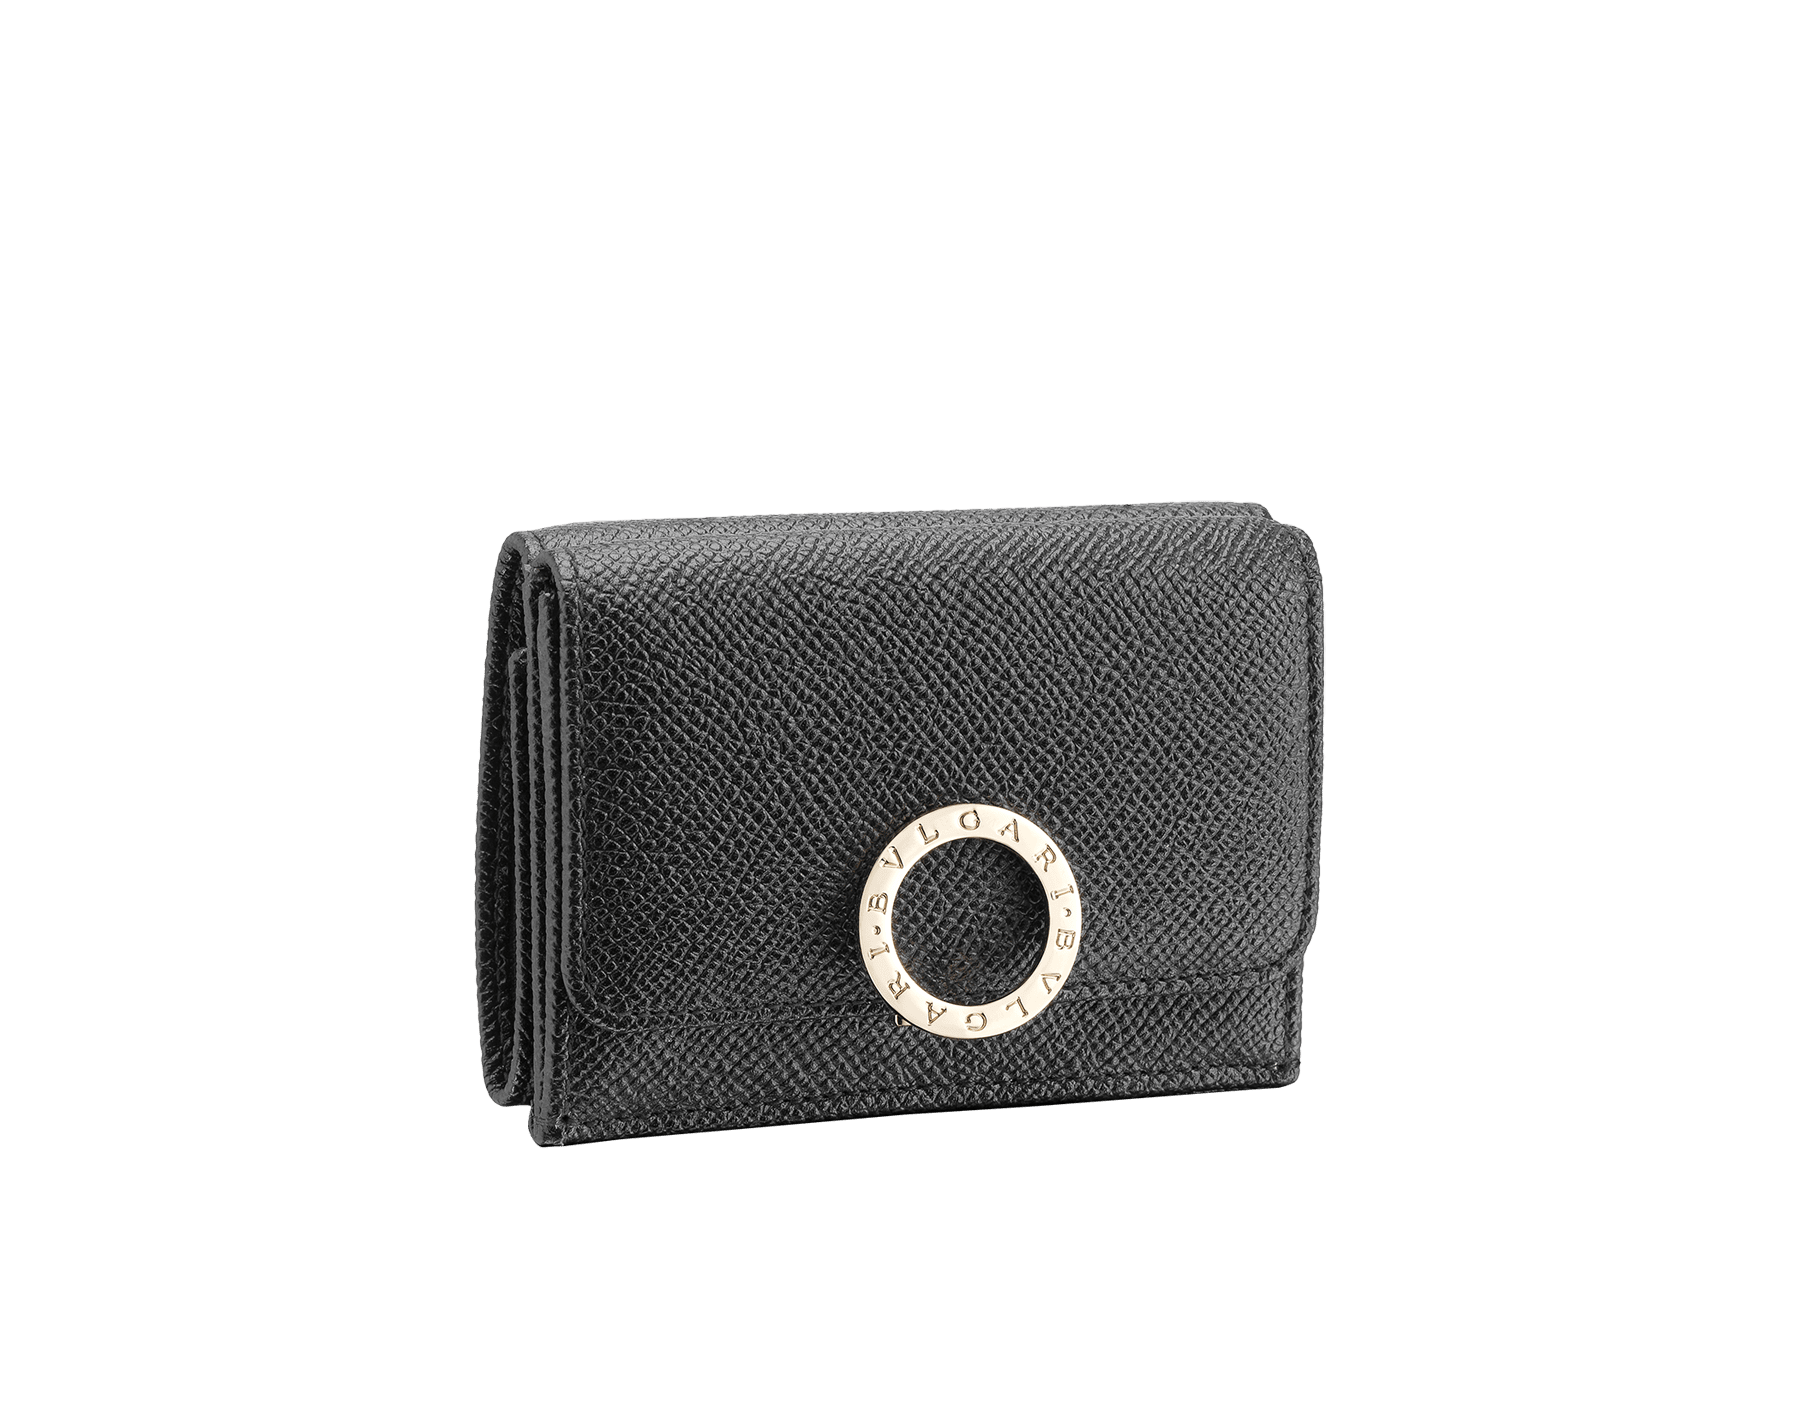 BVLGARI BVLGARI super compact wallet in black grain calf leather and black nappa leather. Iconic logo closure clip in light gold plated brass. 288648 image 1